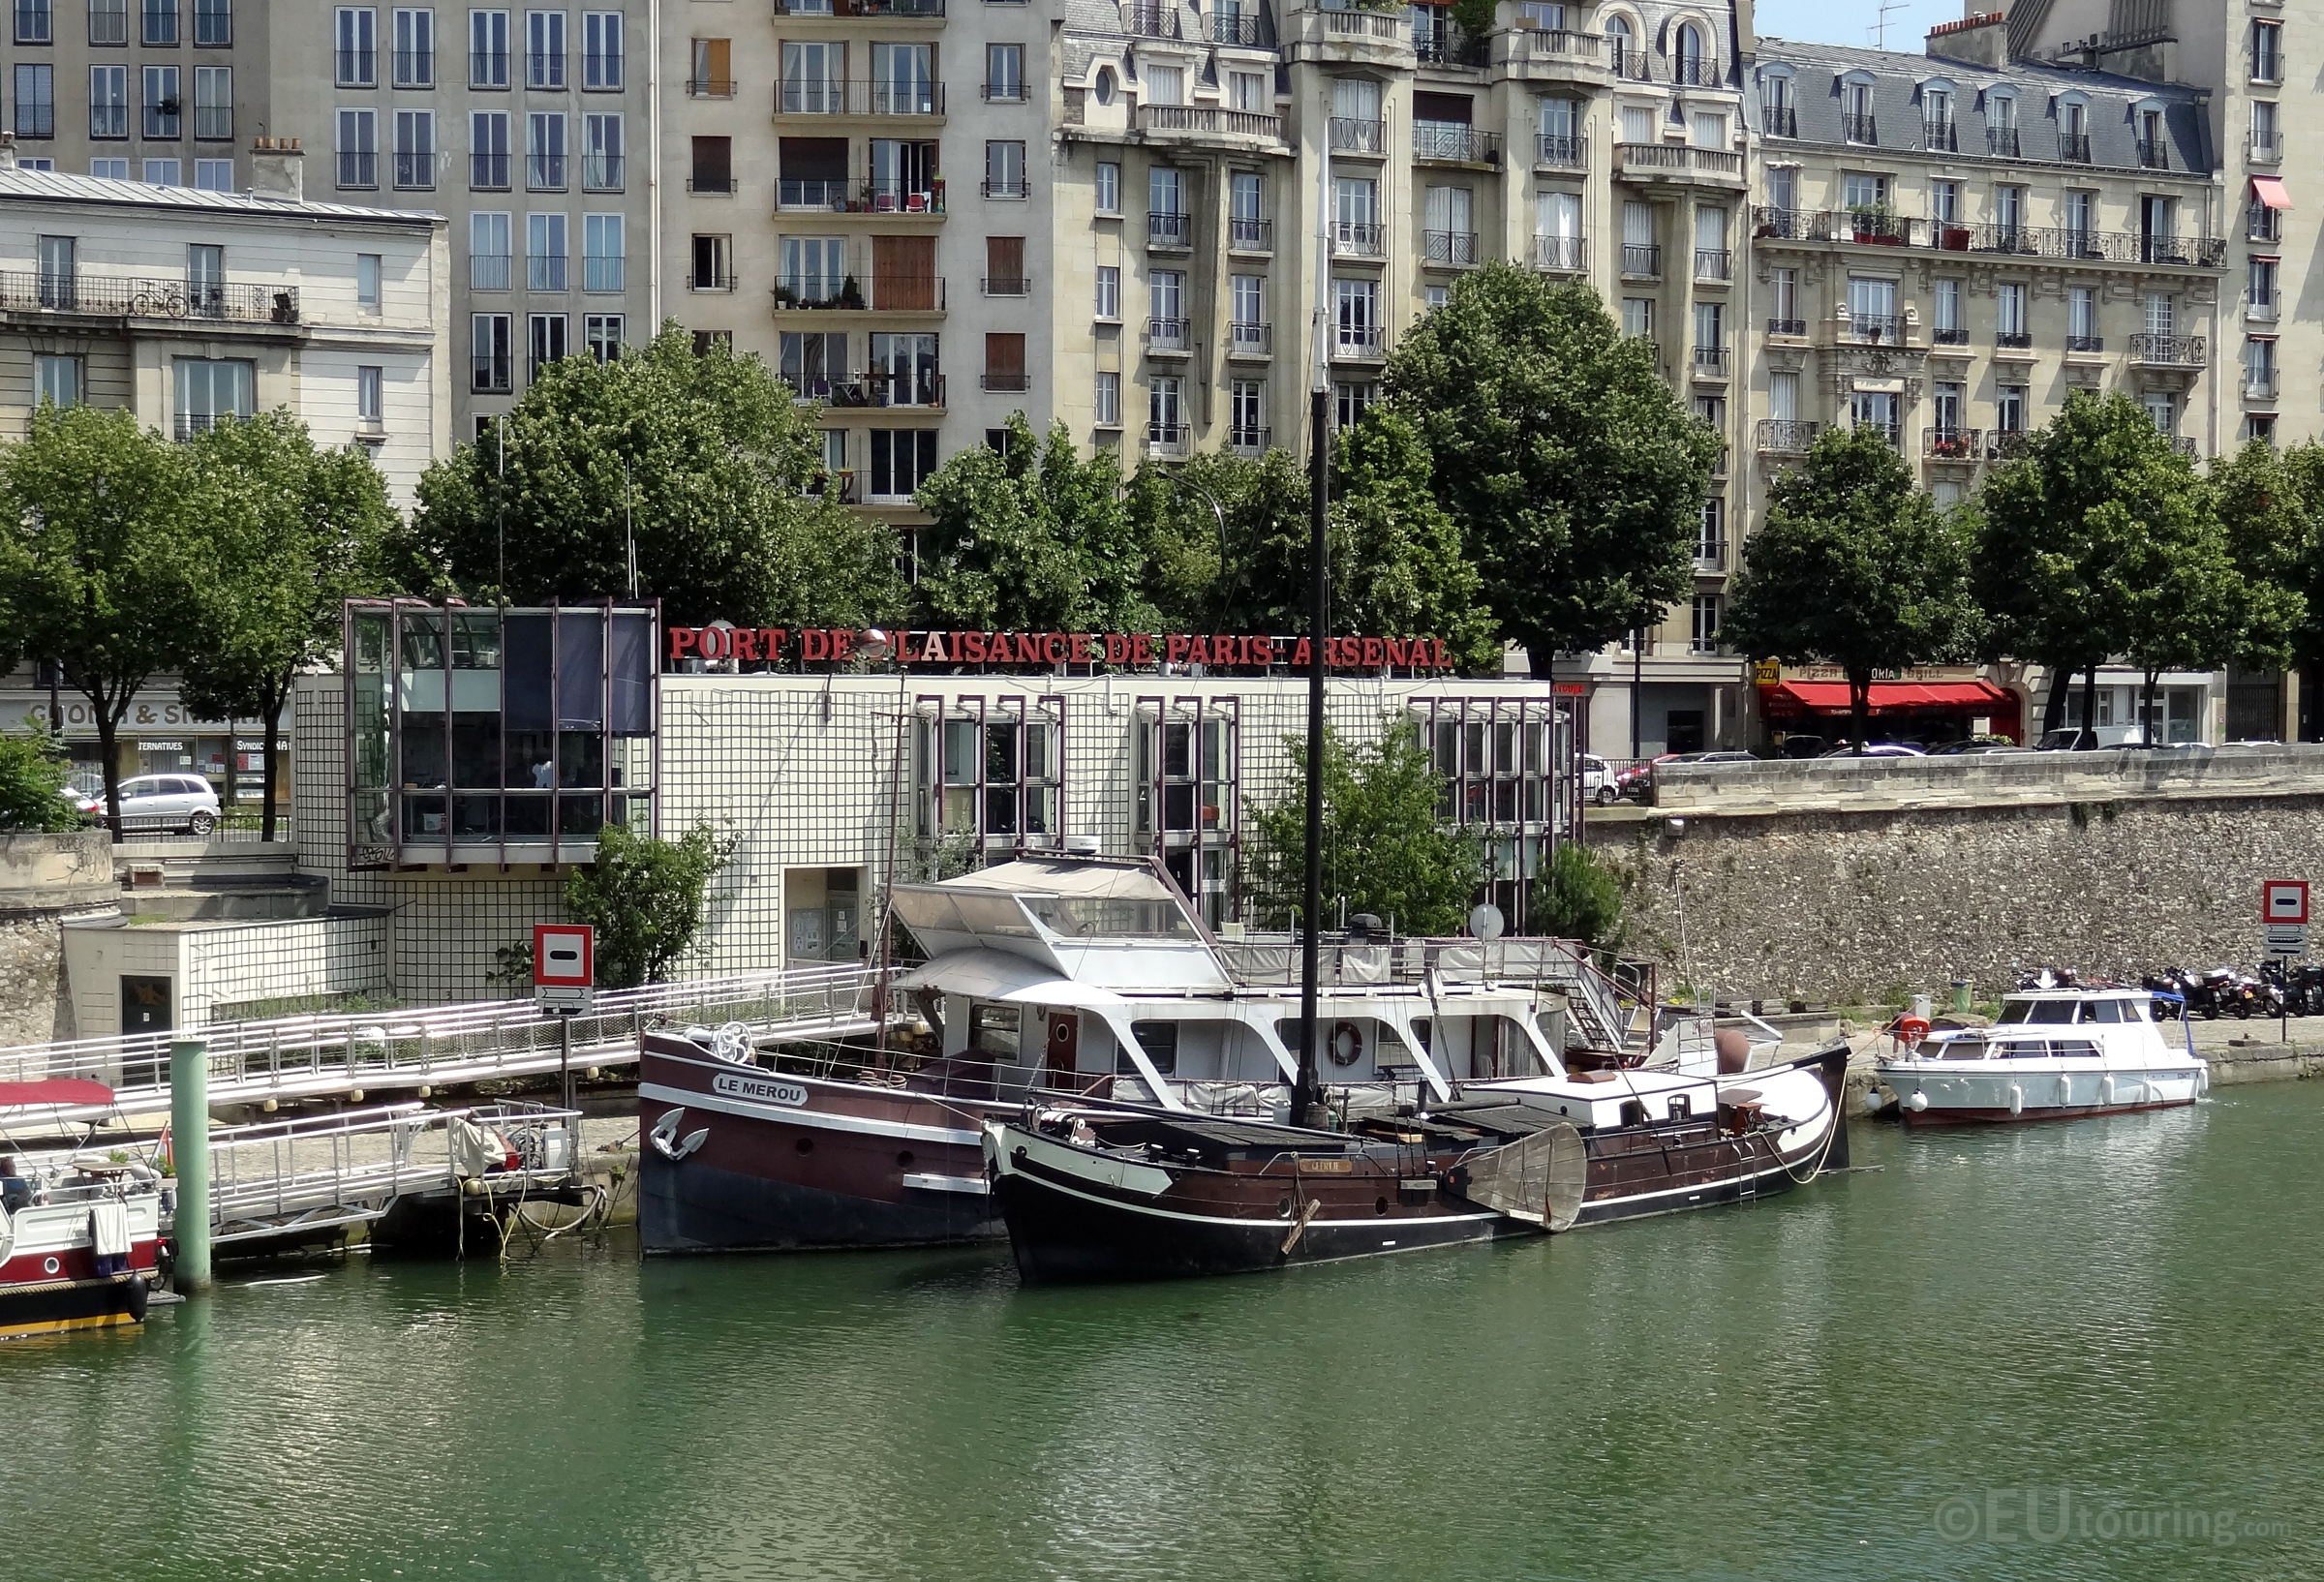 Port de Plaisance de Paris Arsenal